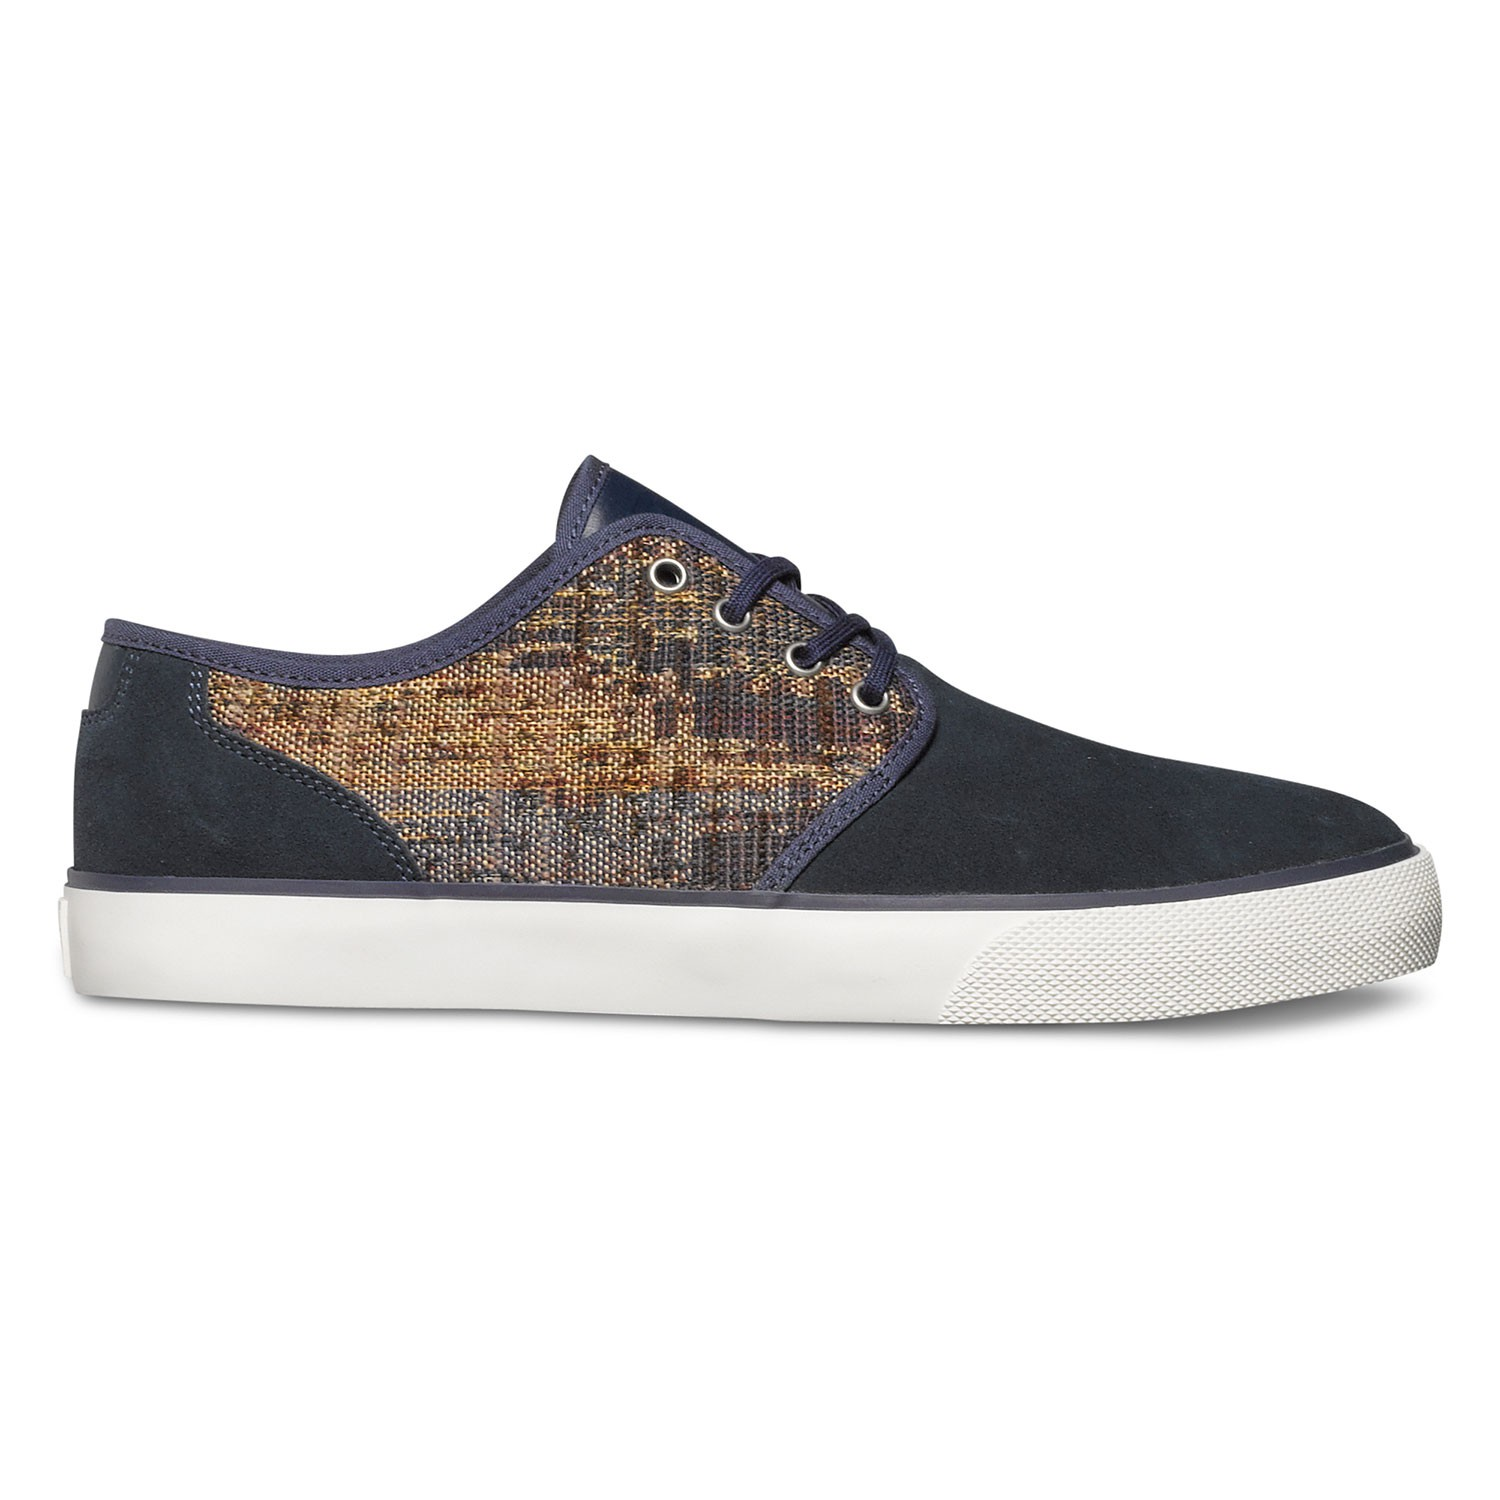 Dc Studio Se- Blue/Brown/Blue sneakers